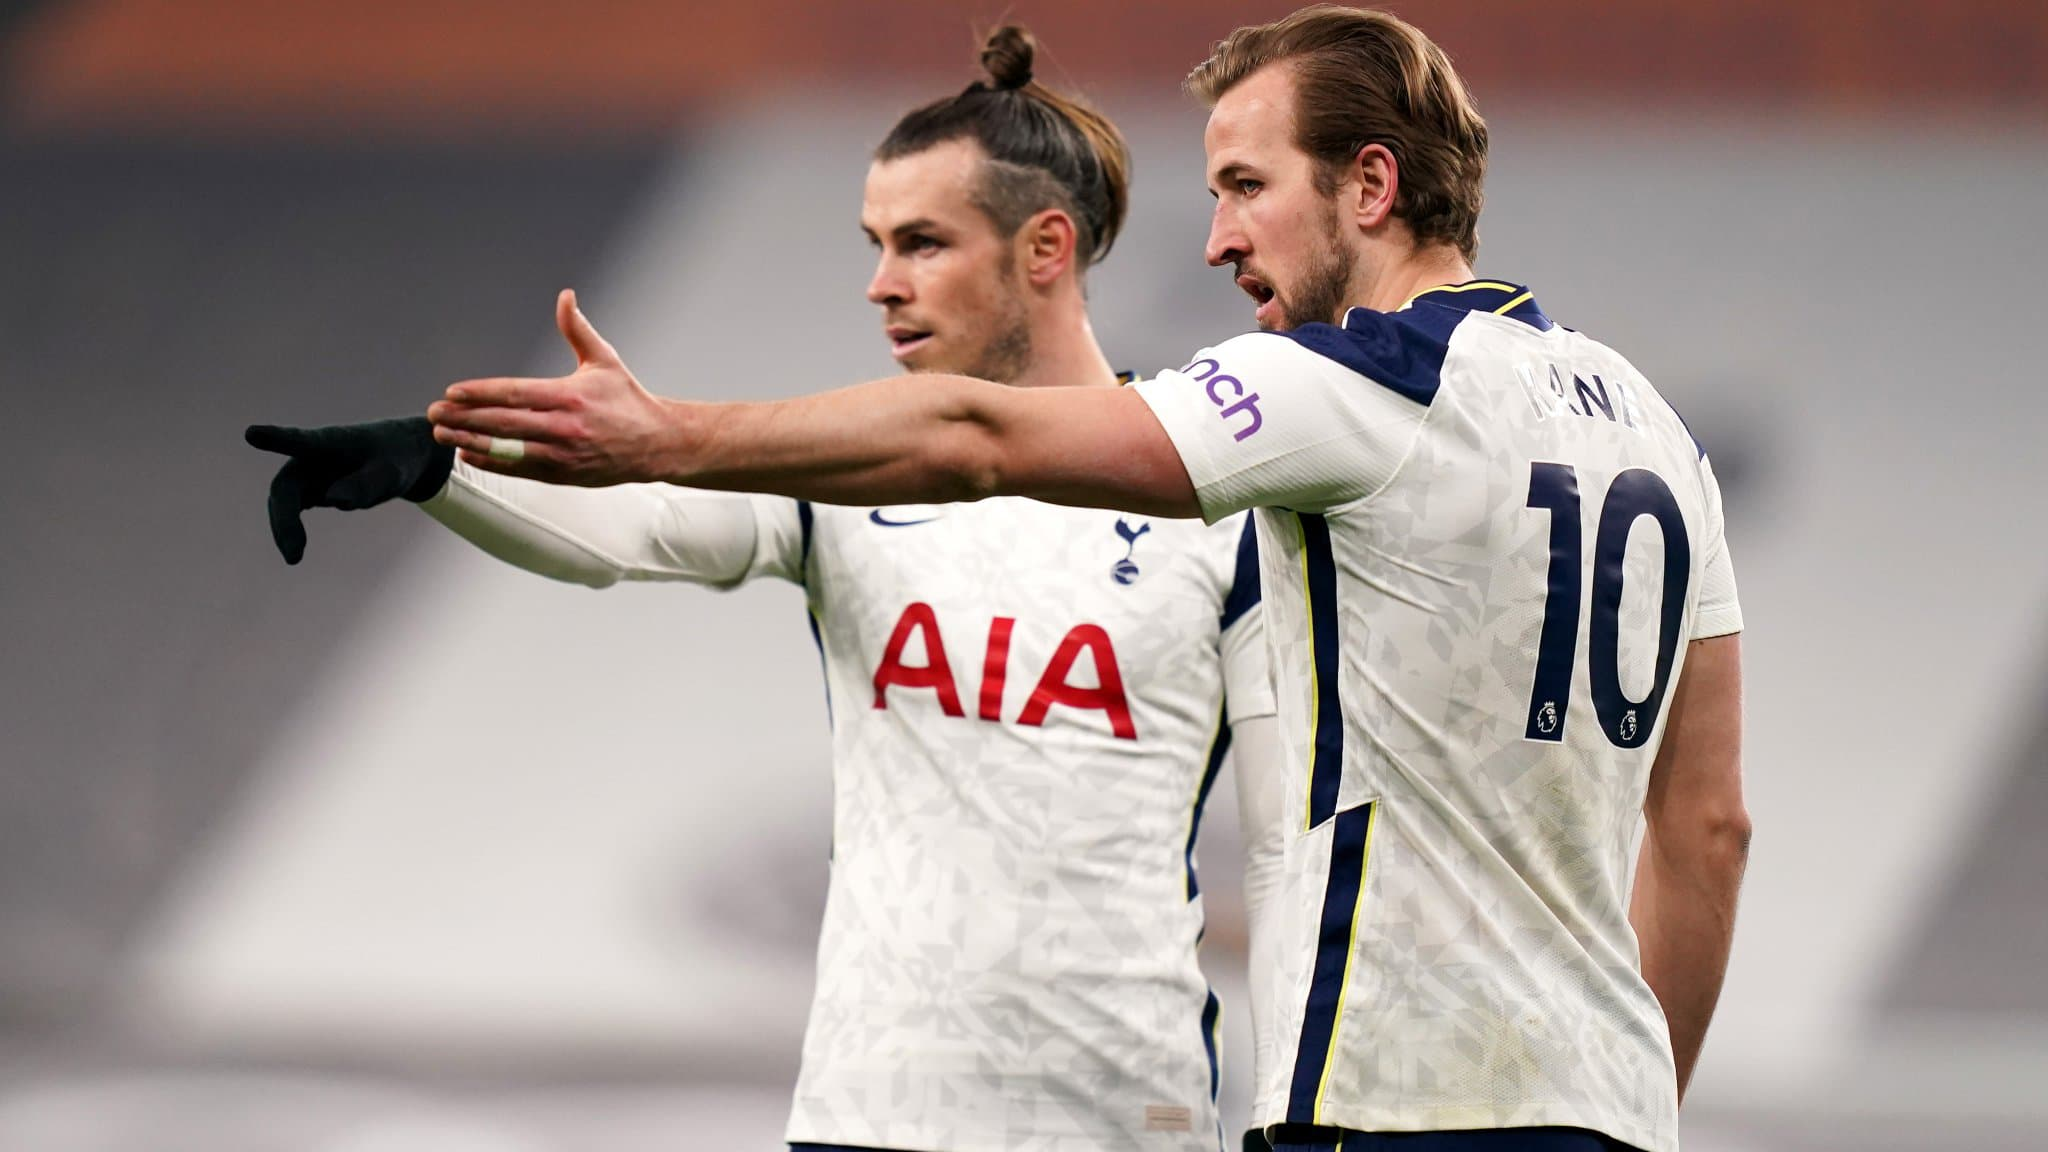 Gareth Bale & Harry Kane double up - Premier League team of the week